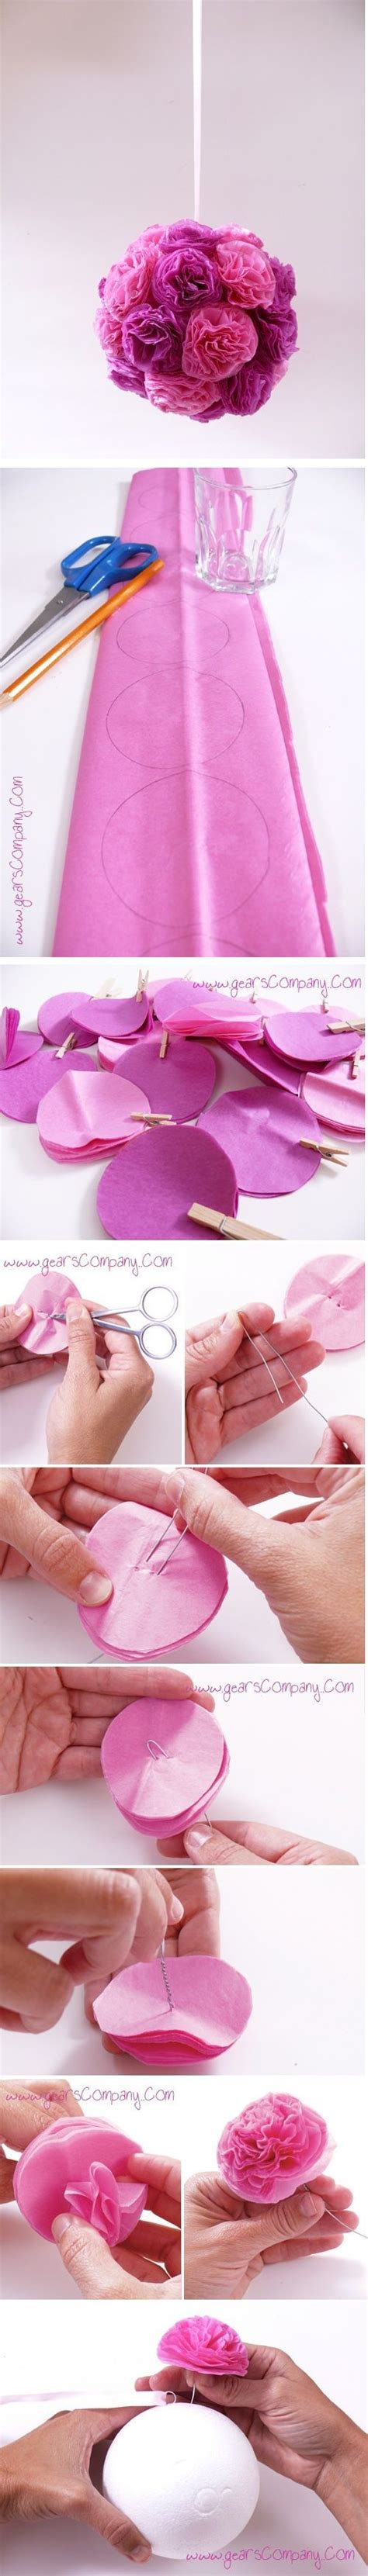 Paper Craft Decoration Home 25 Best Ideas About Paper Flower On Tissue Paper Flowers Easy Paper Flowers